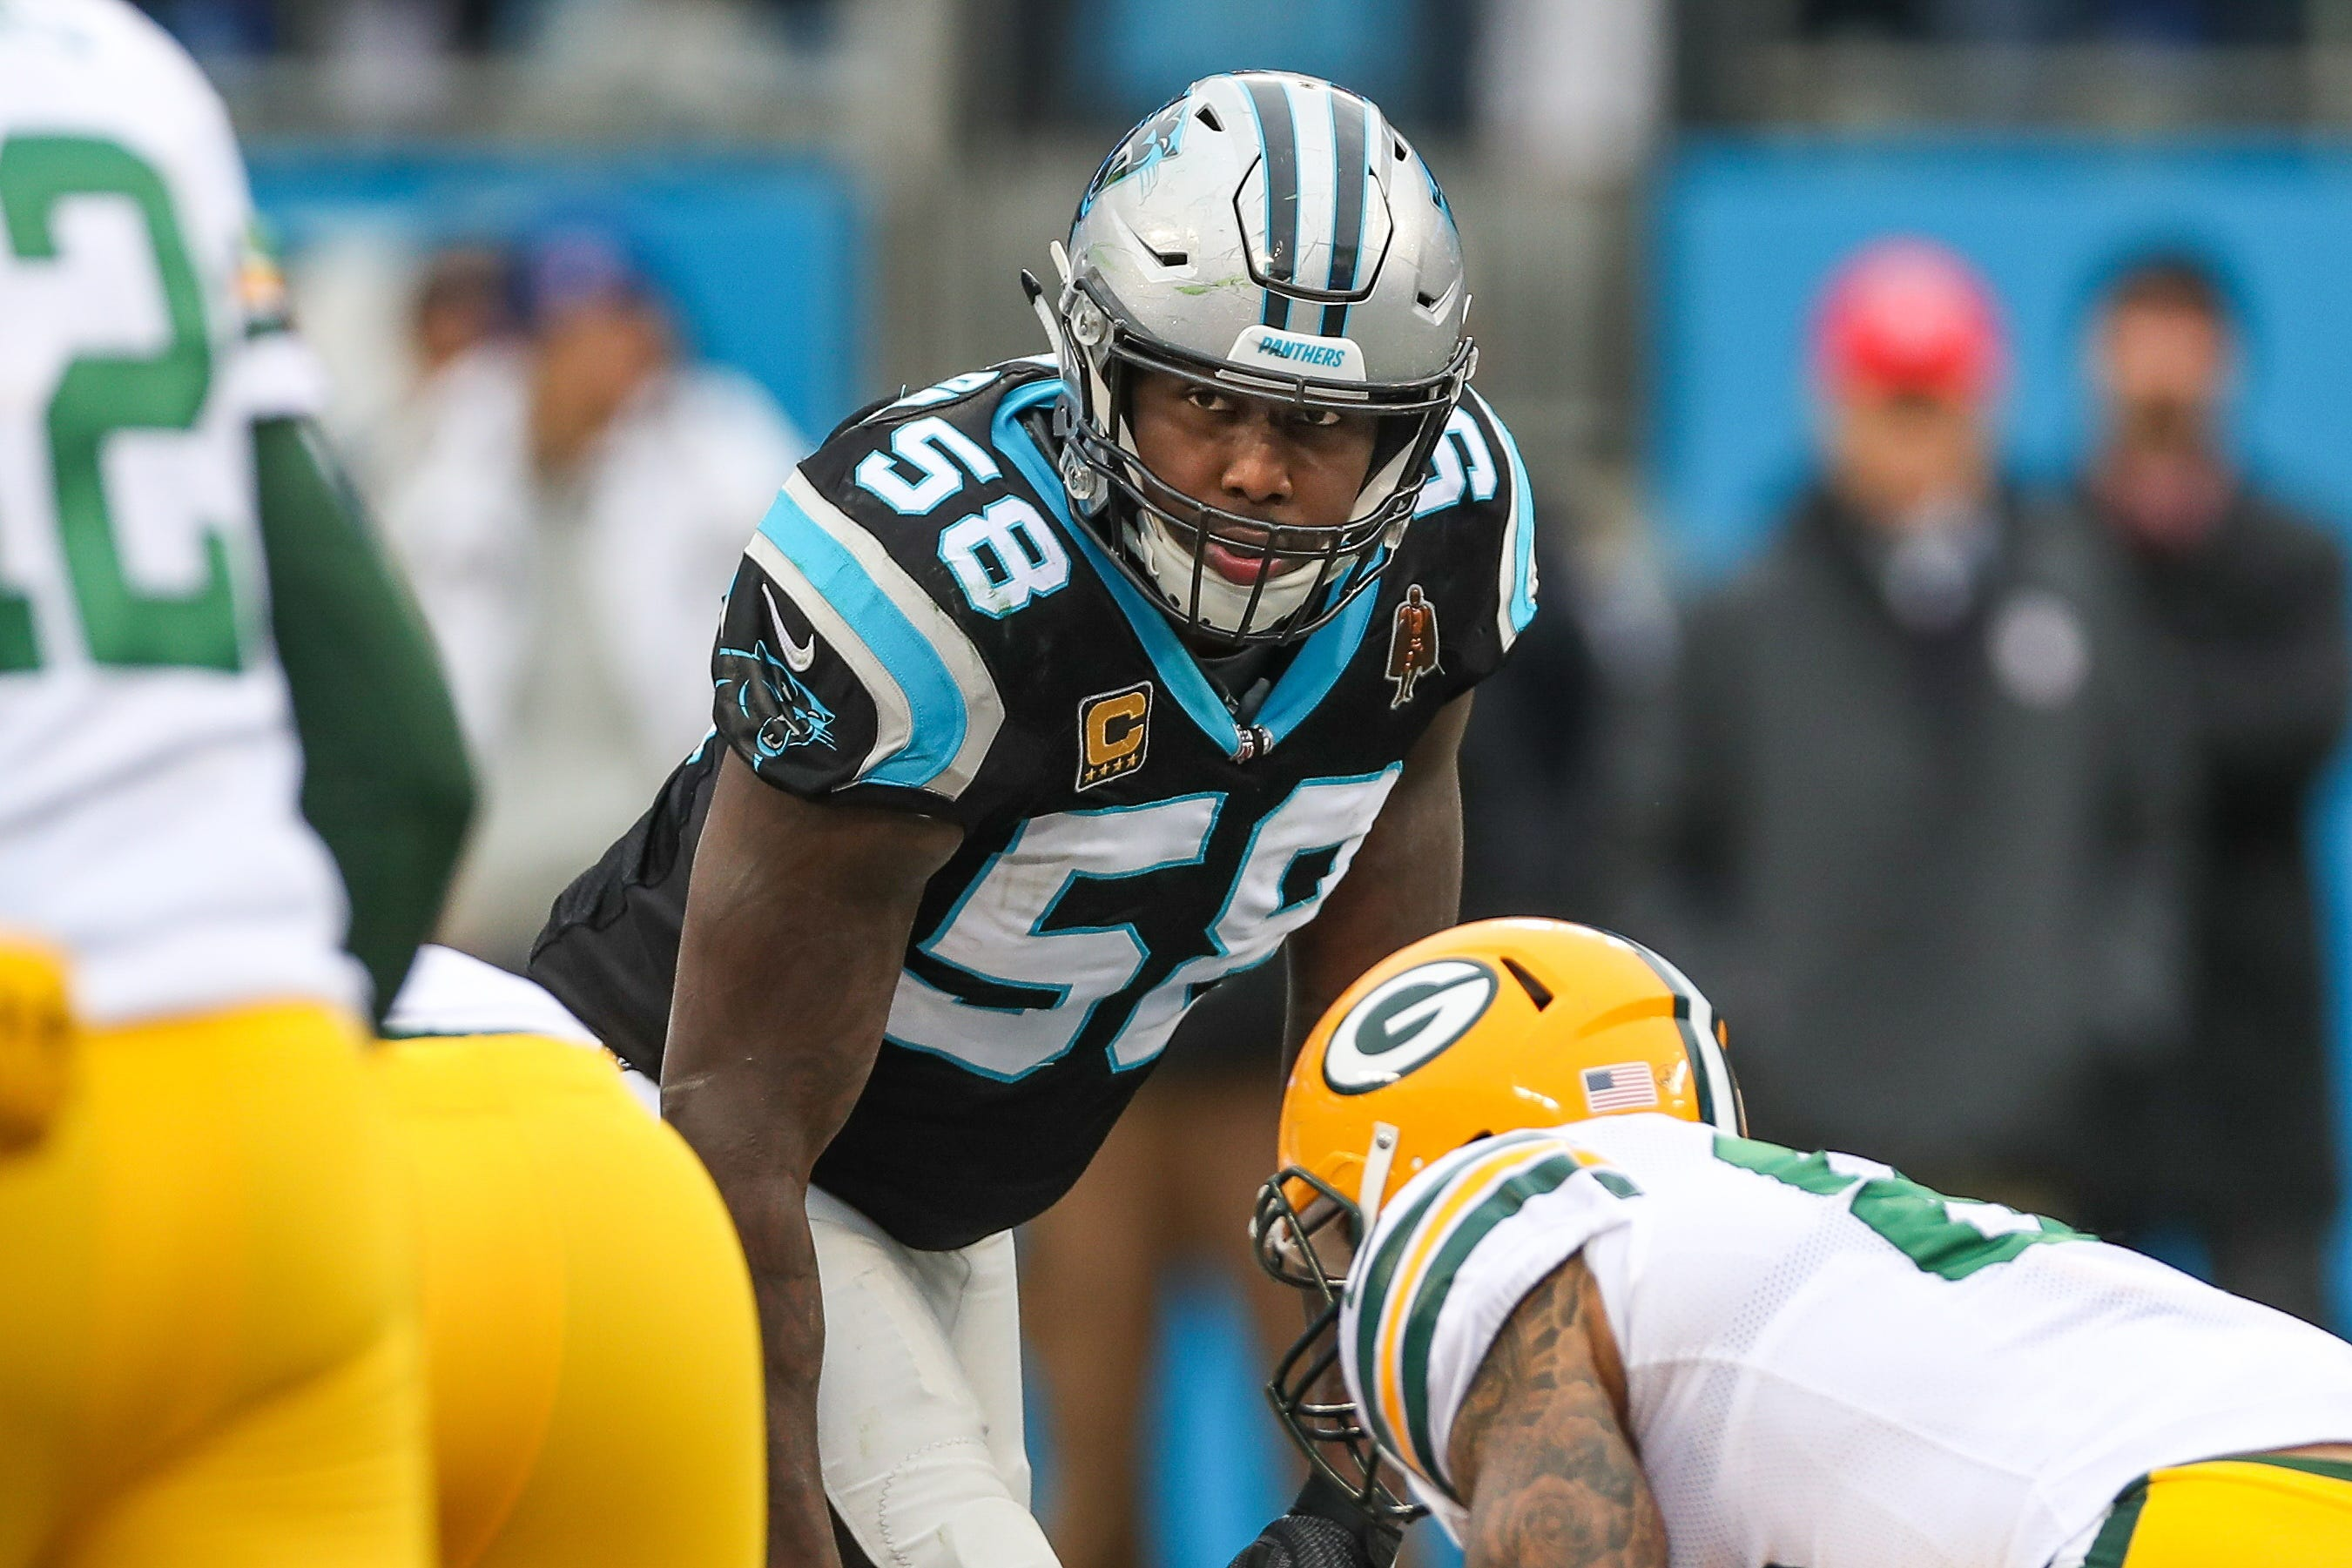 Panthers' Thomas Davis suspended 2 games for hit on Packers' Davante Adams